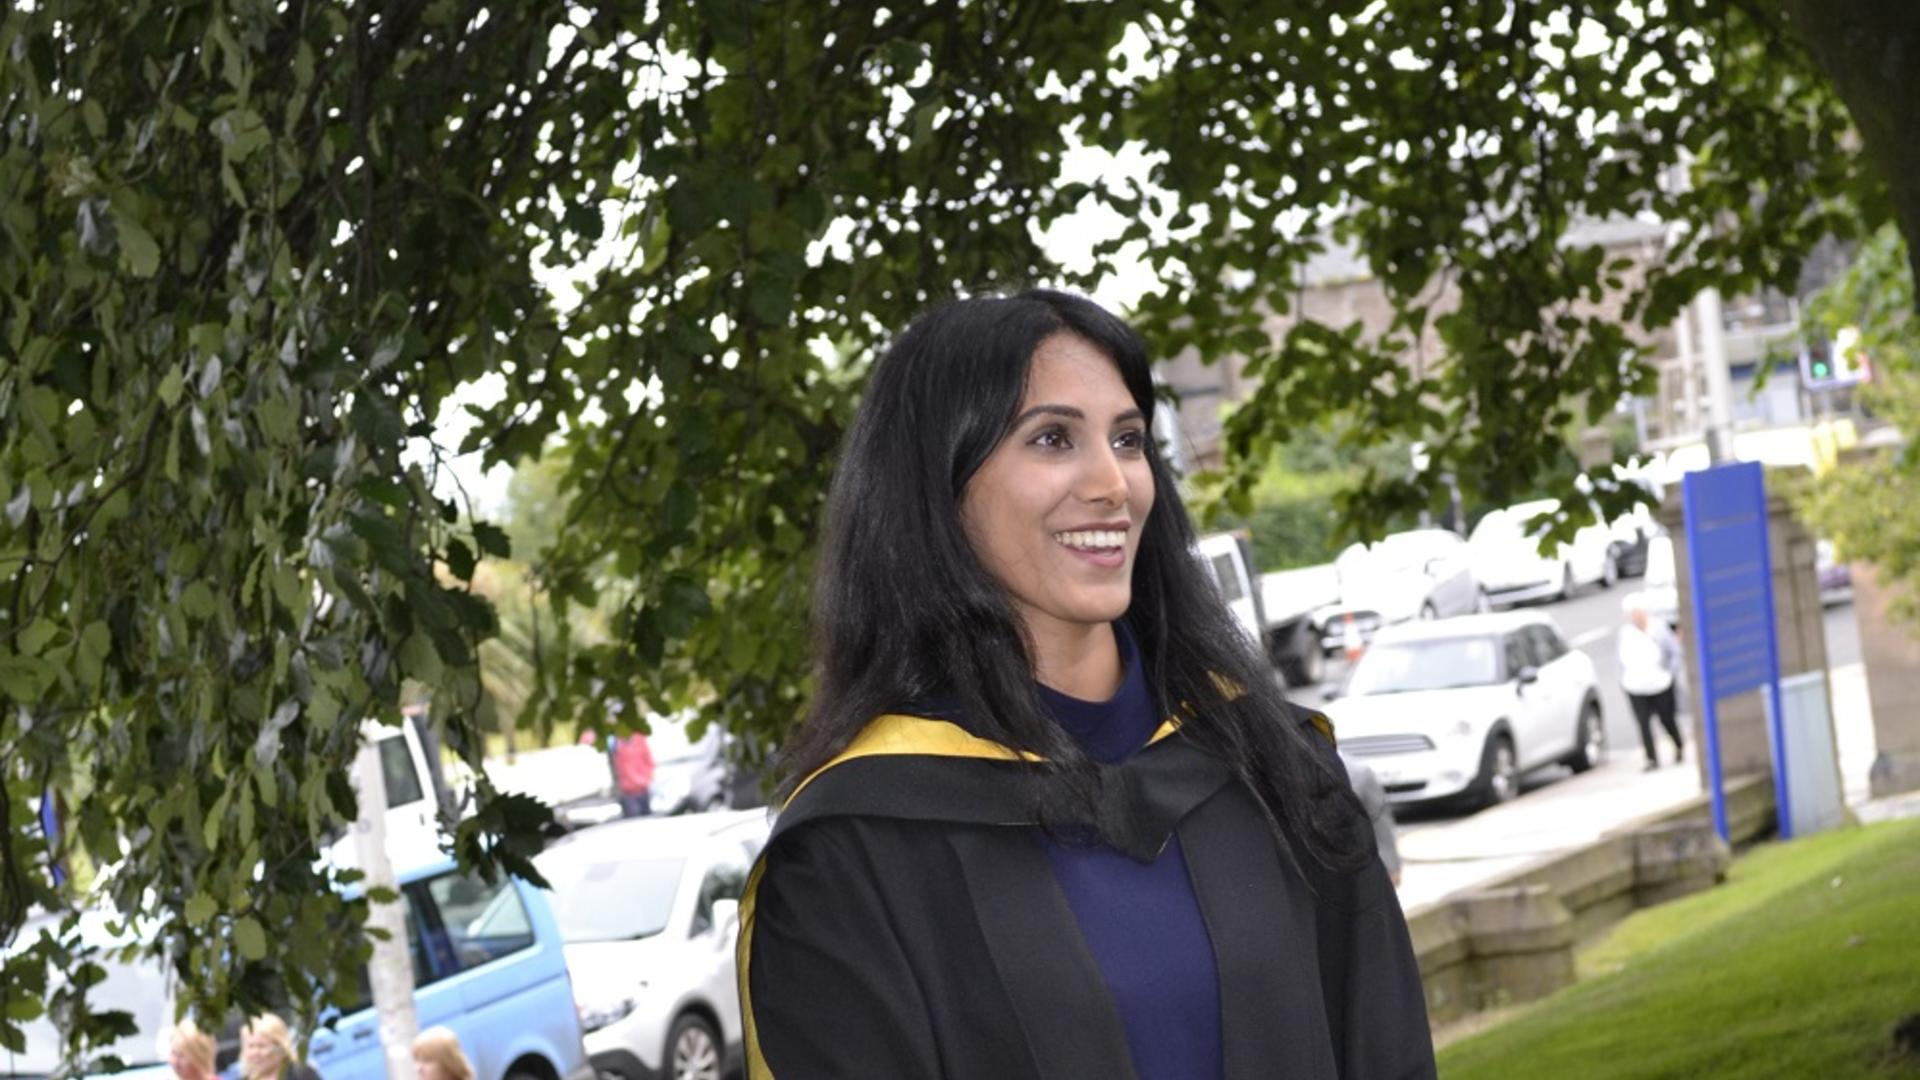 Caron Dhillon in her graduation robes